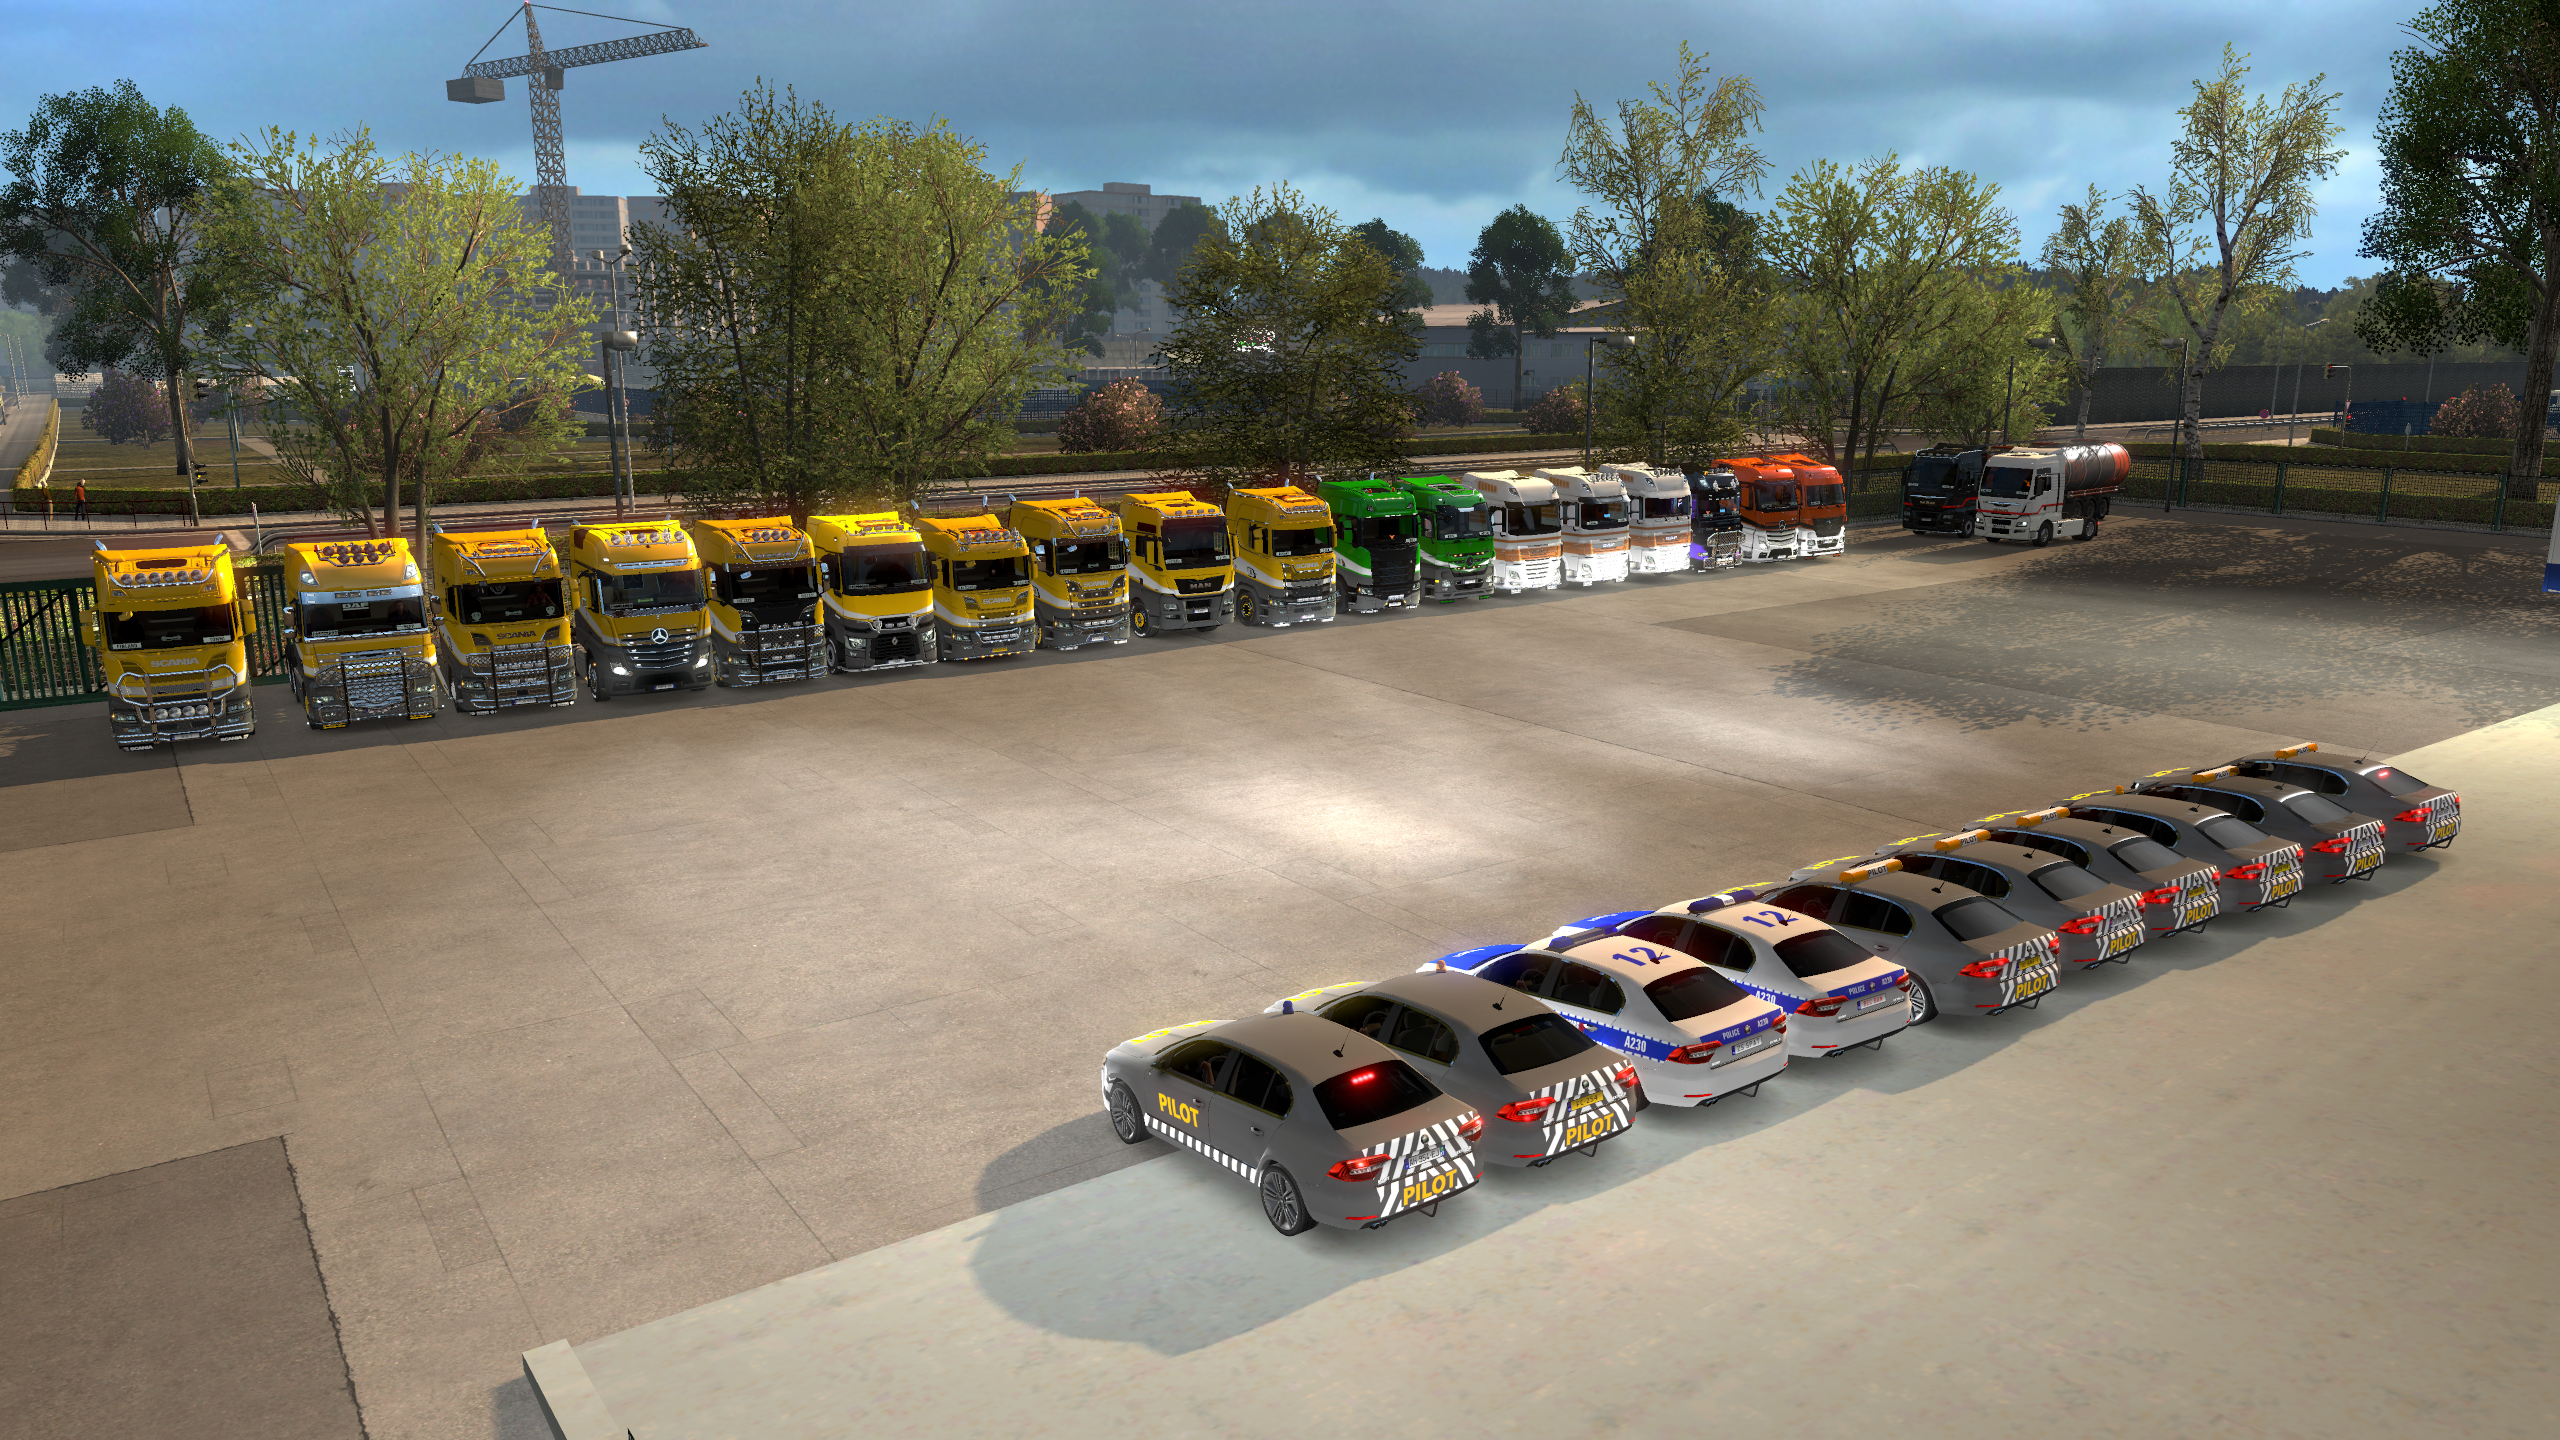 Euro-Truck-Simulator-2-Multiplayer-23_05_2020-21_30_49